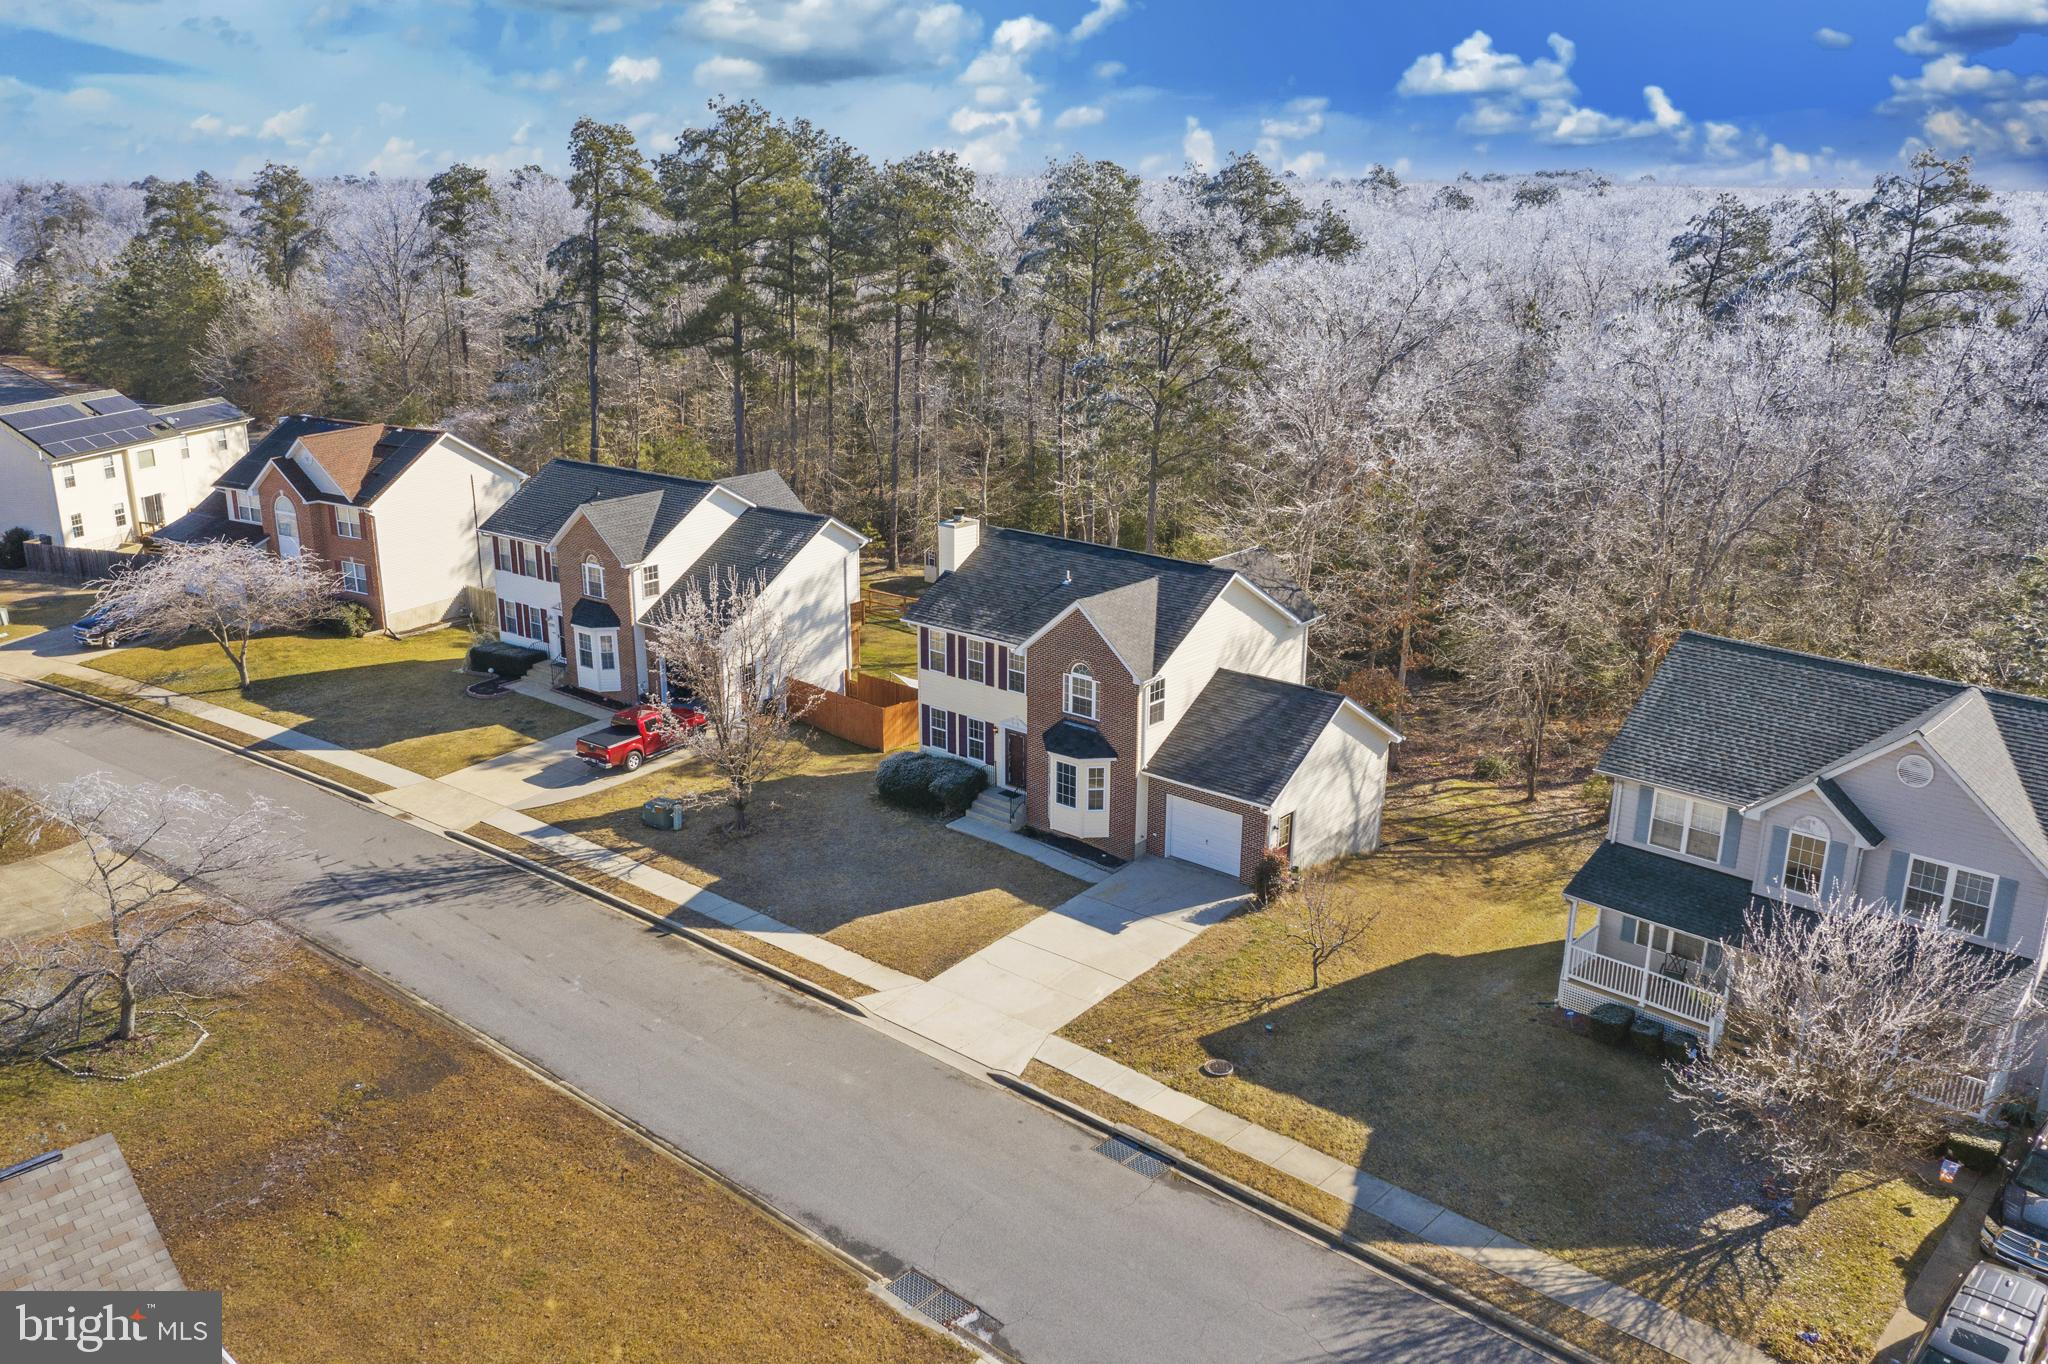 Check out this stunning fully renovated colonial! Featuring 4 bedrooms, 4 baths, with full in law su